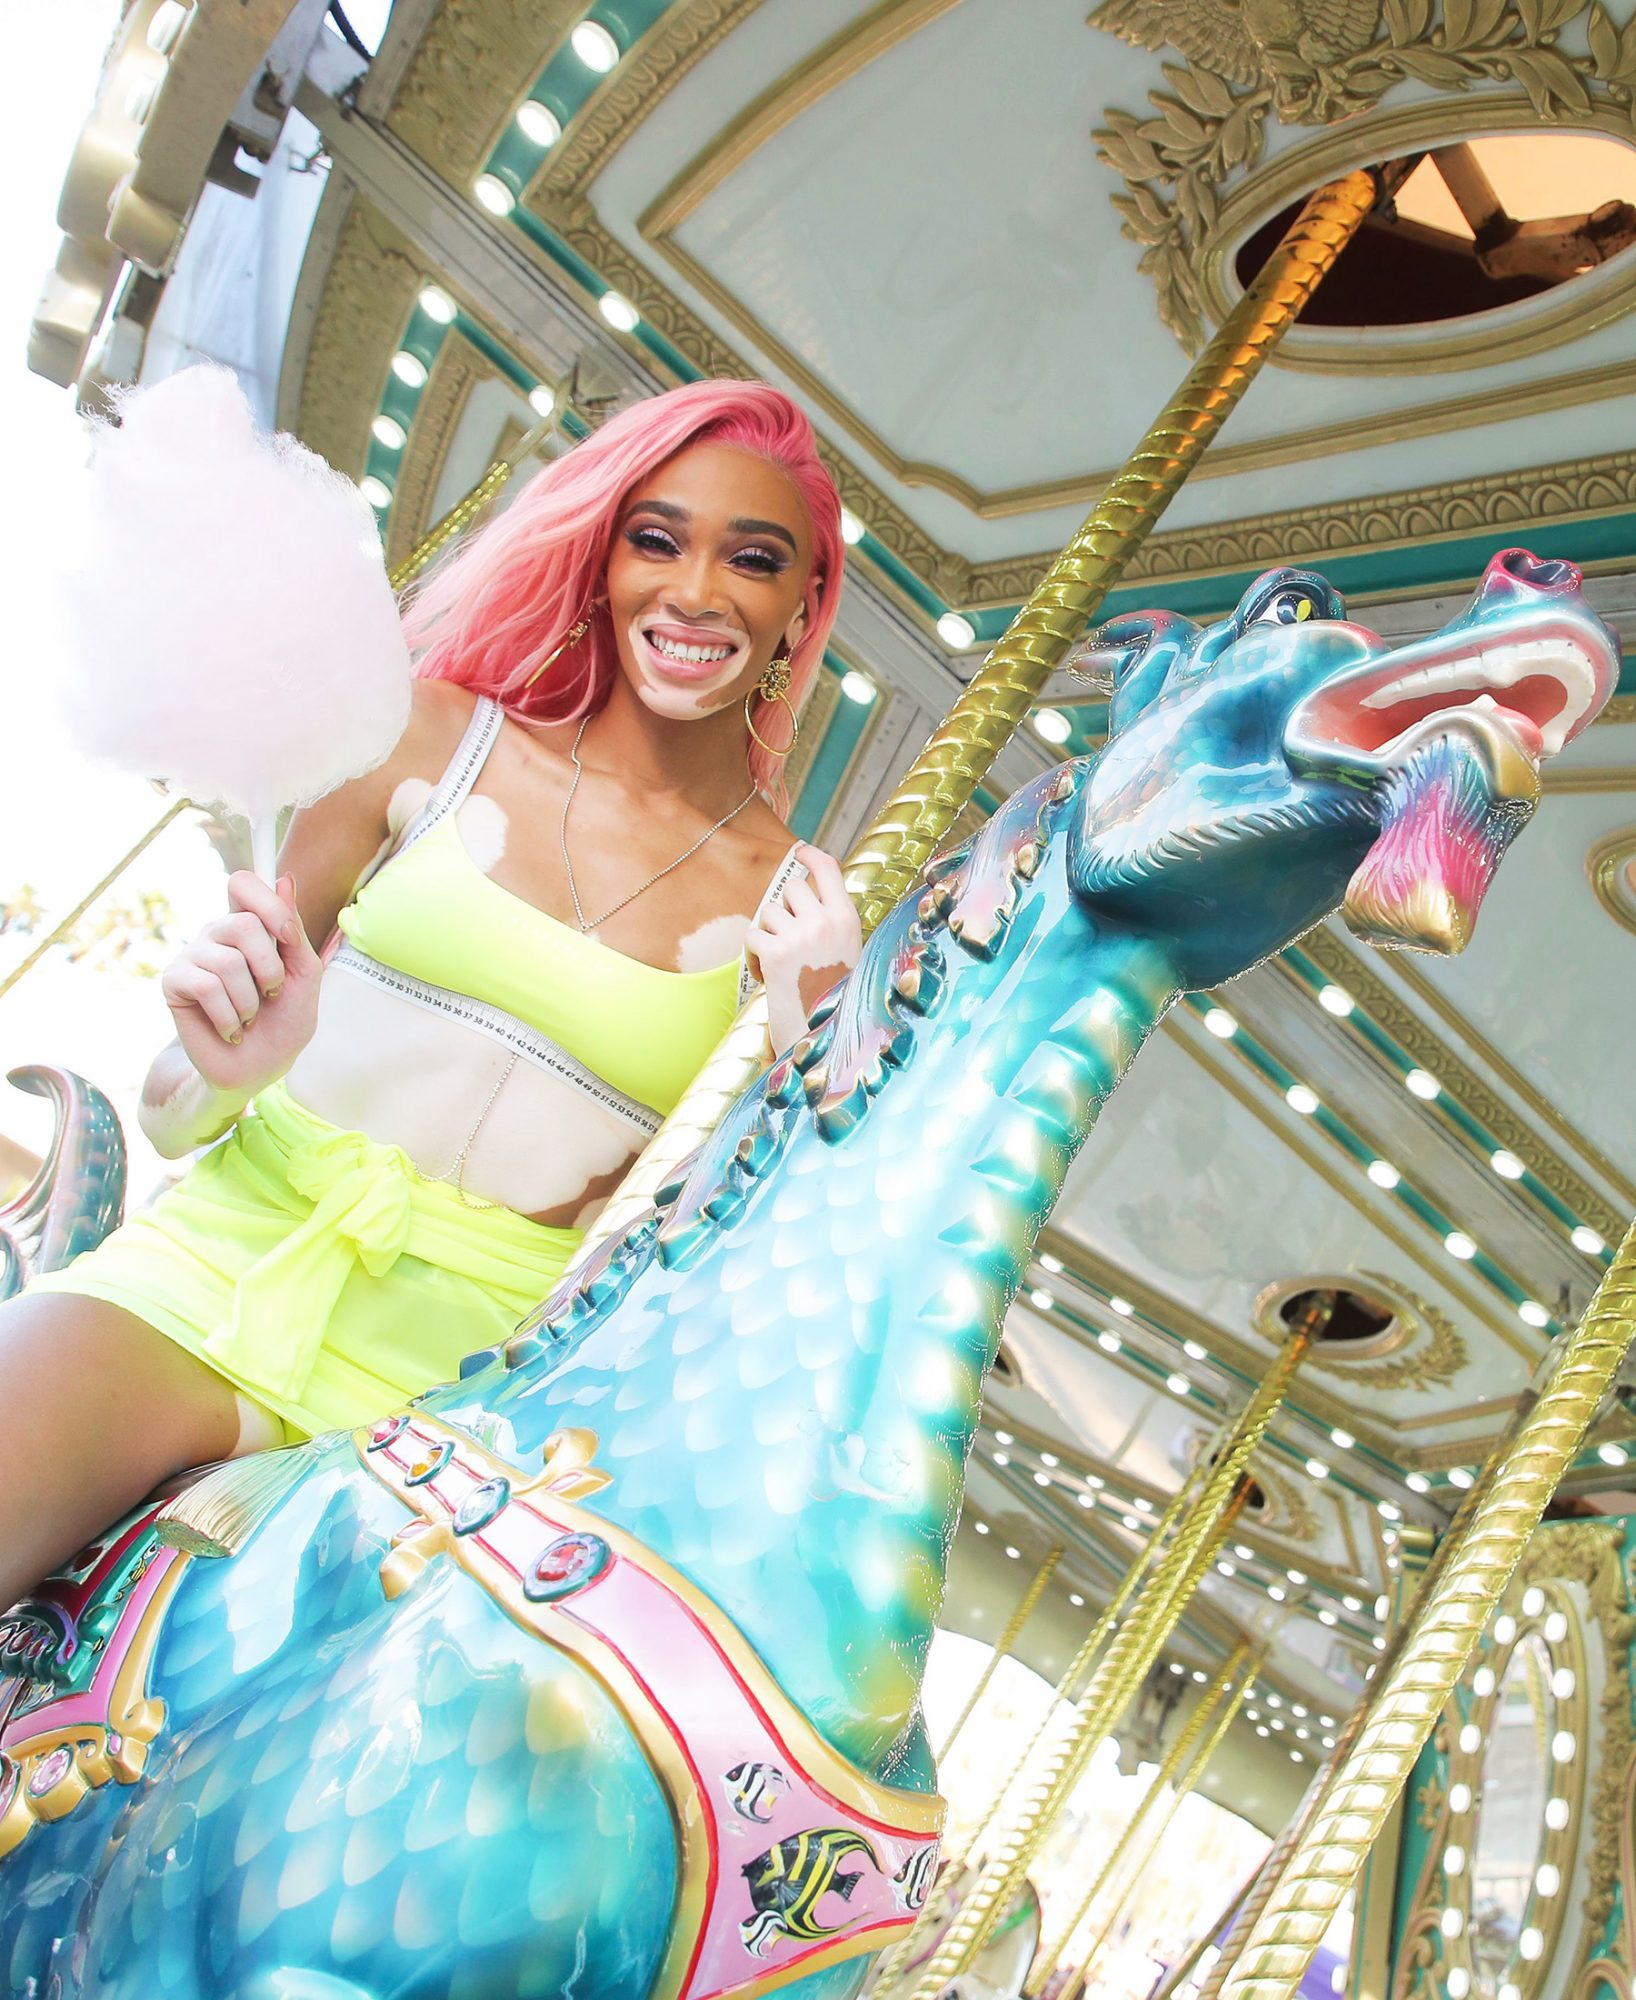 Winnie Harlow Revolve Party, Coachella Valley Music and Arts Festival